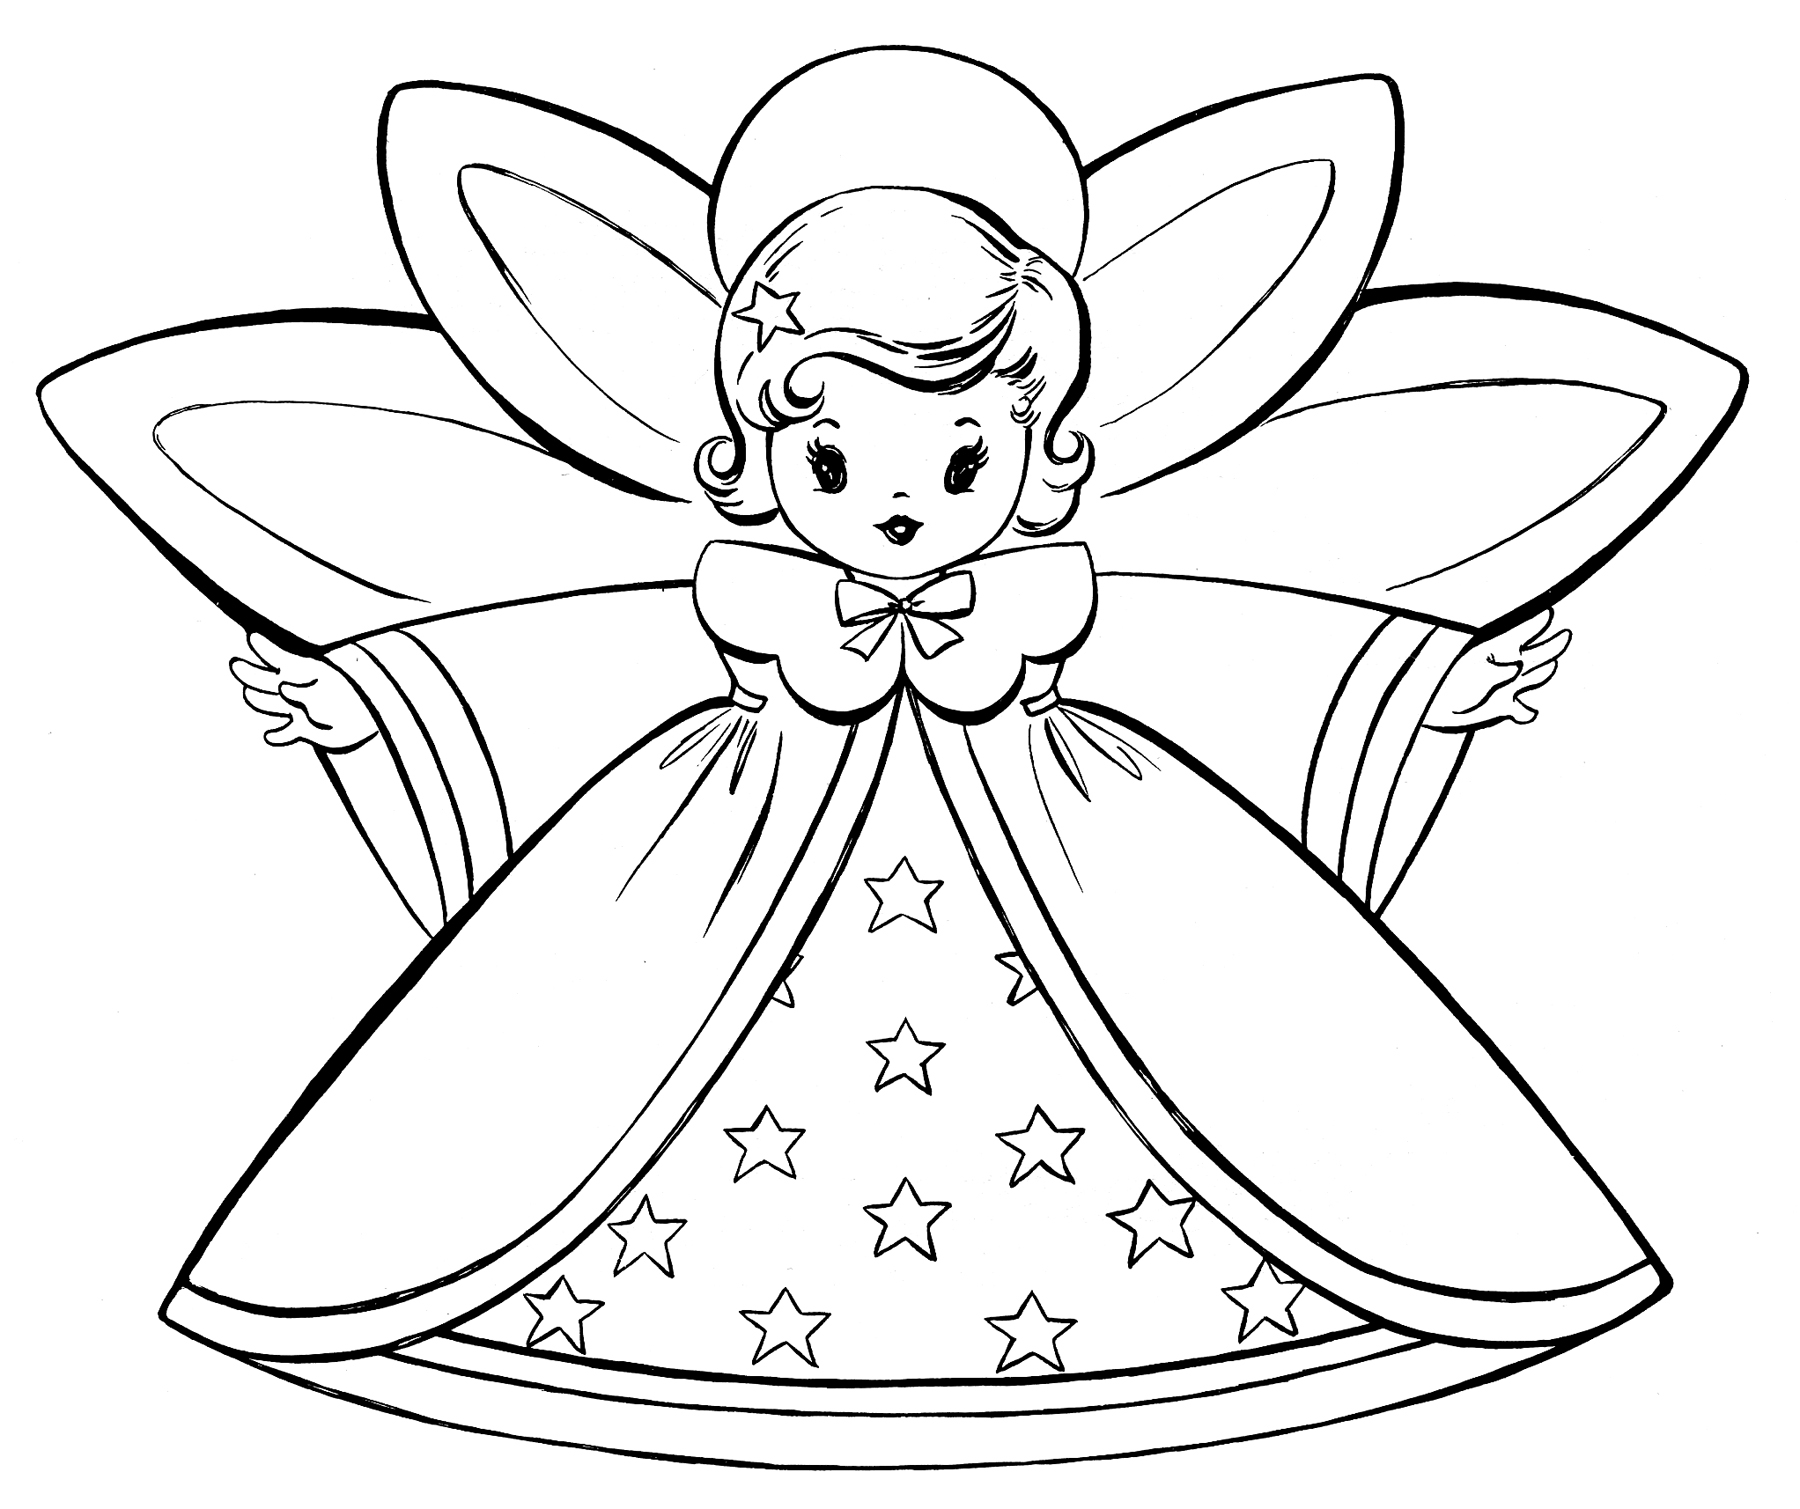 angel coloring page,printable,coloring pages